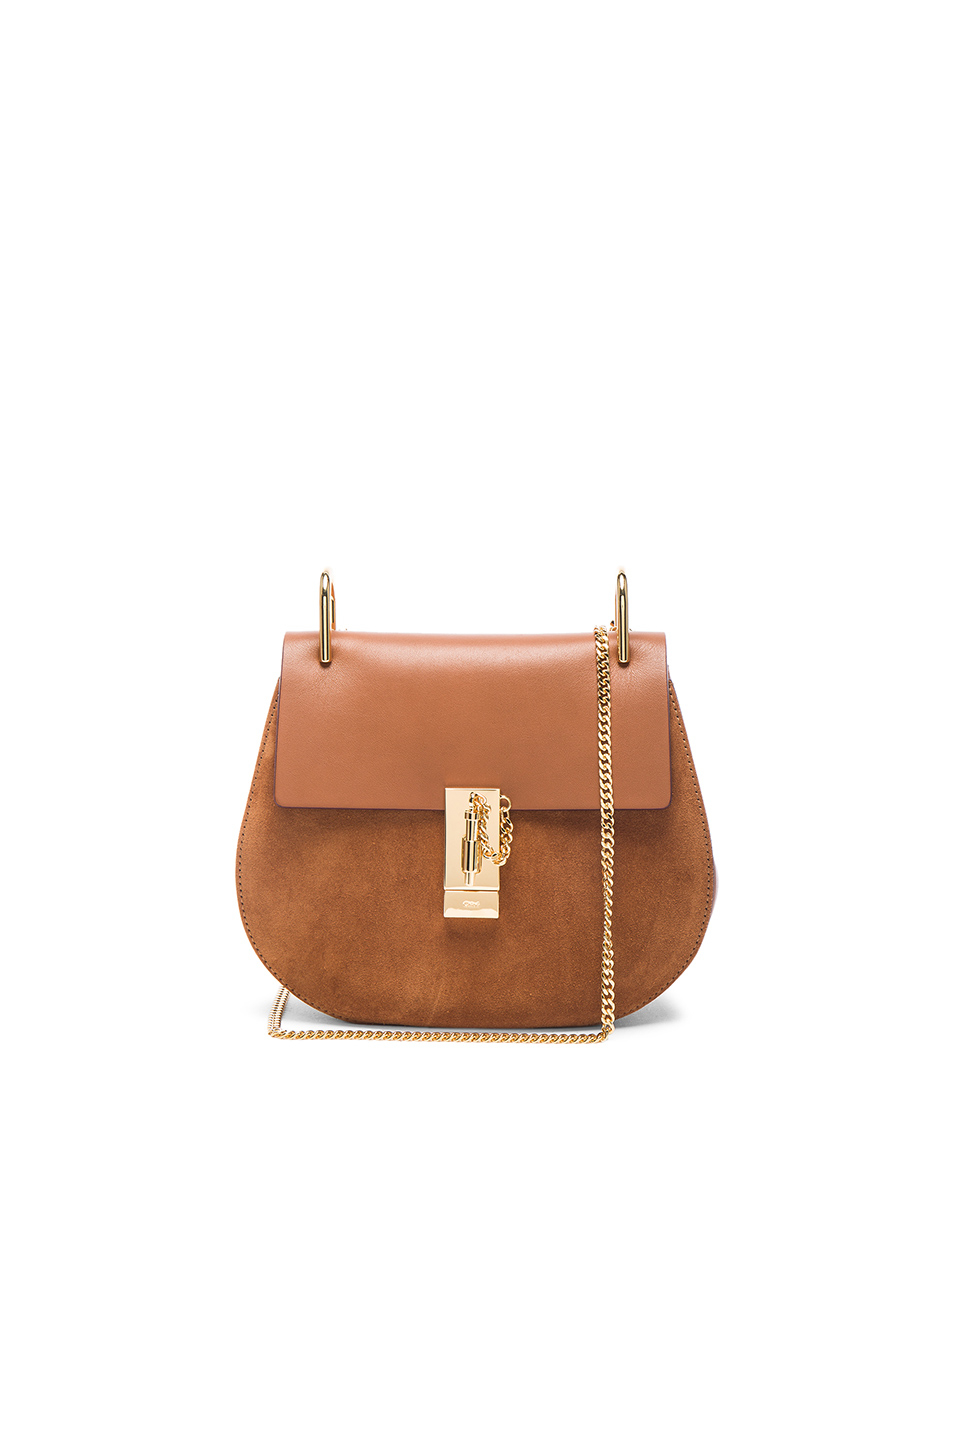 chloes bags - faye small bag in diamond embossed smooth calfskin